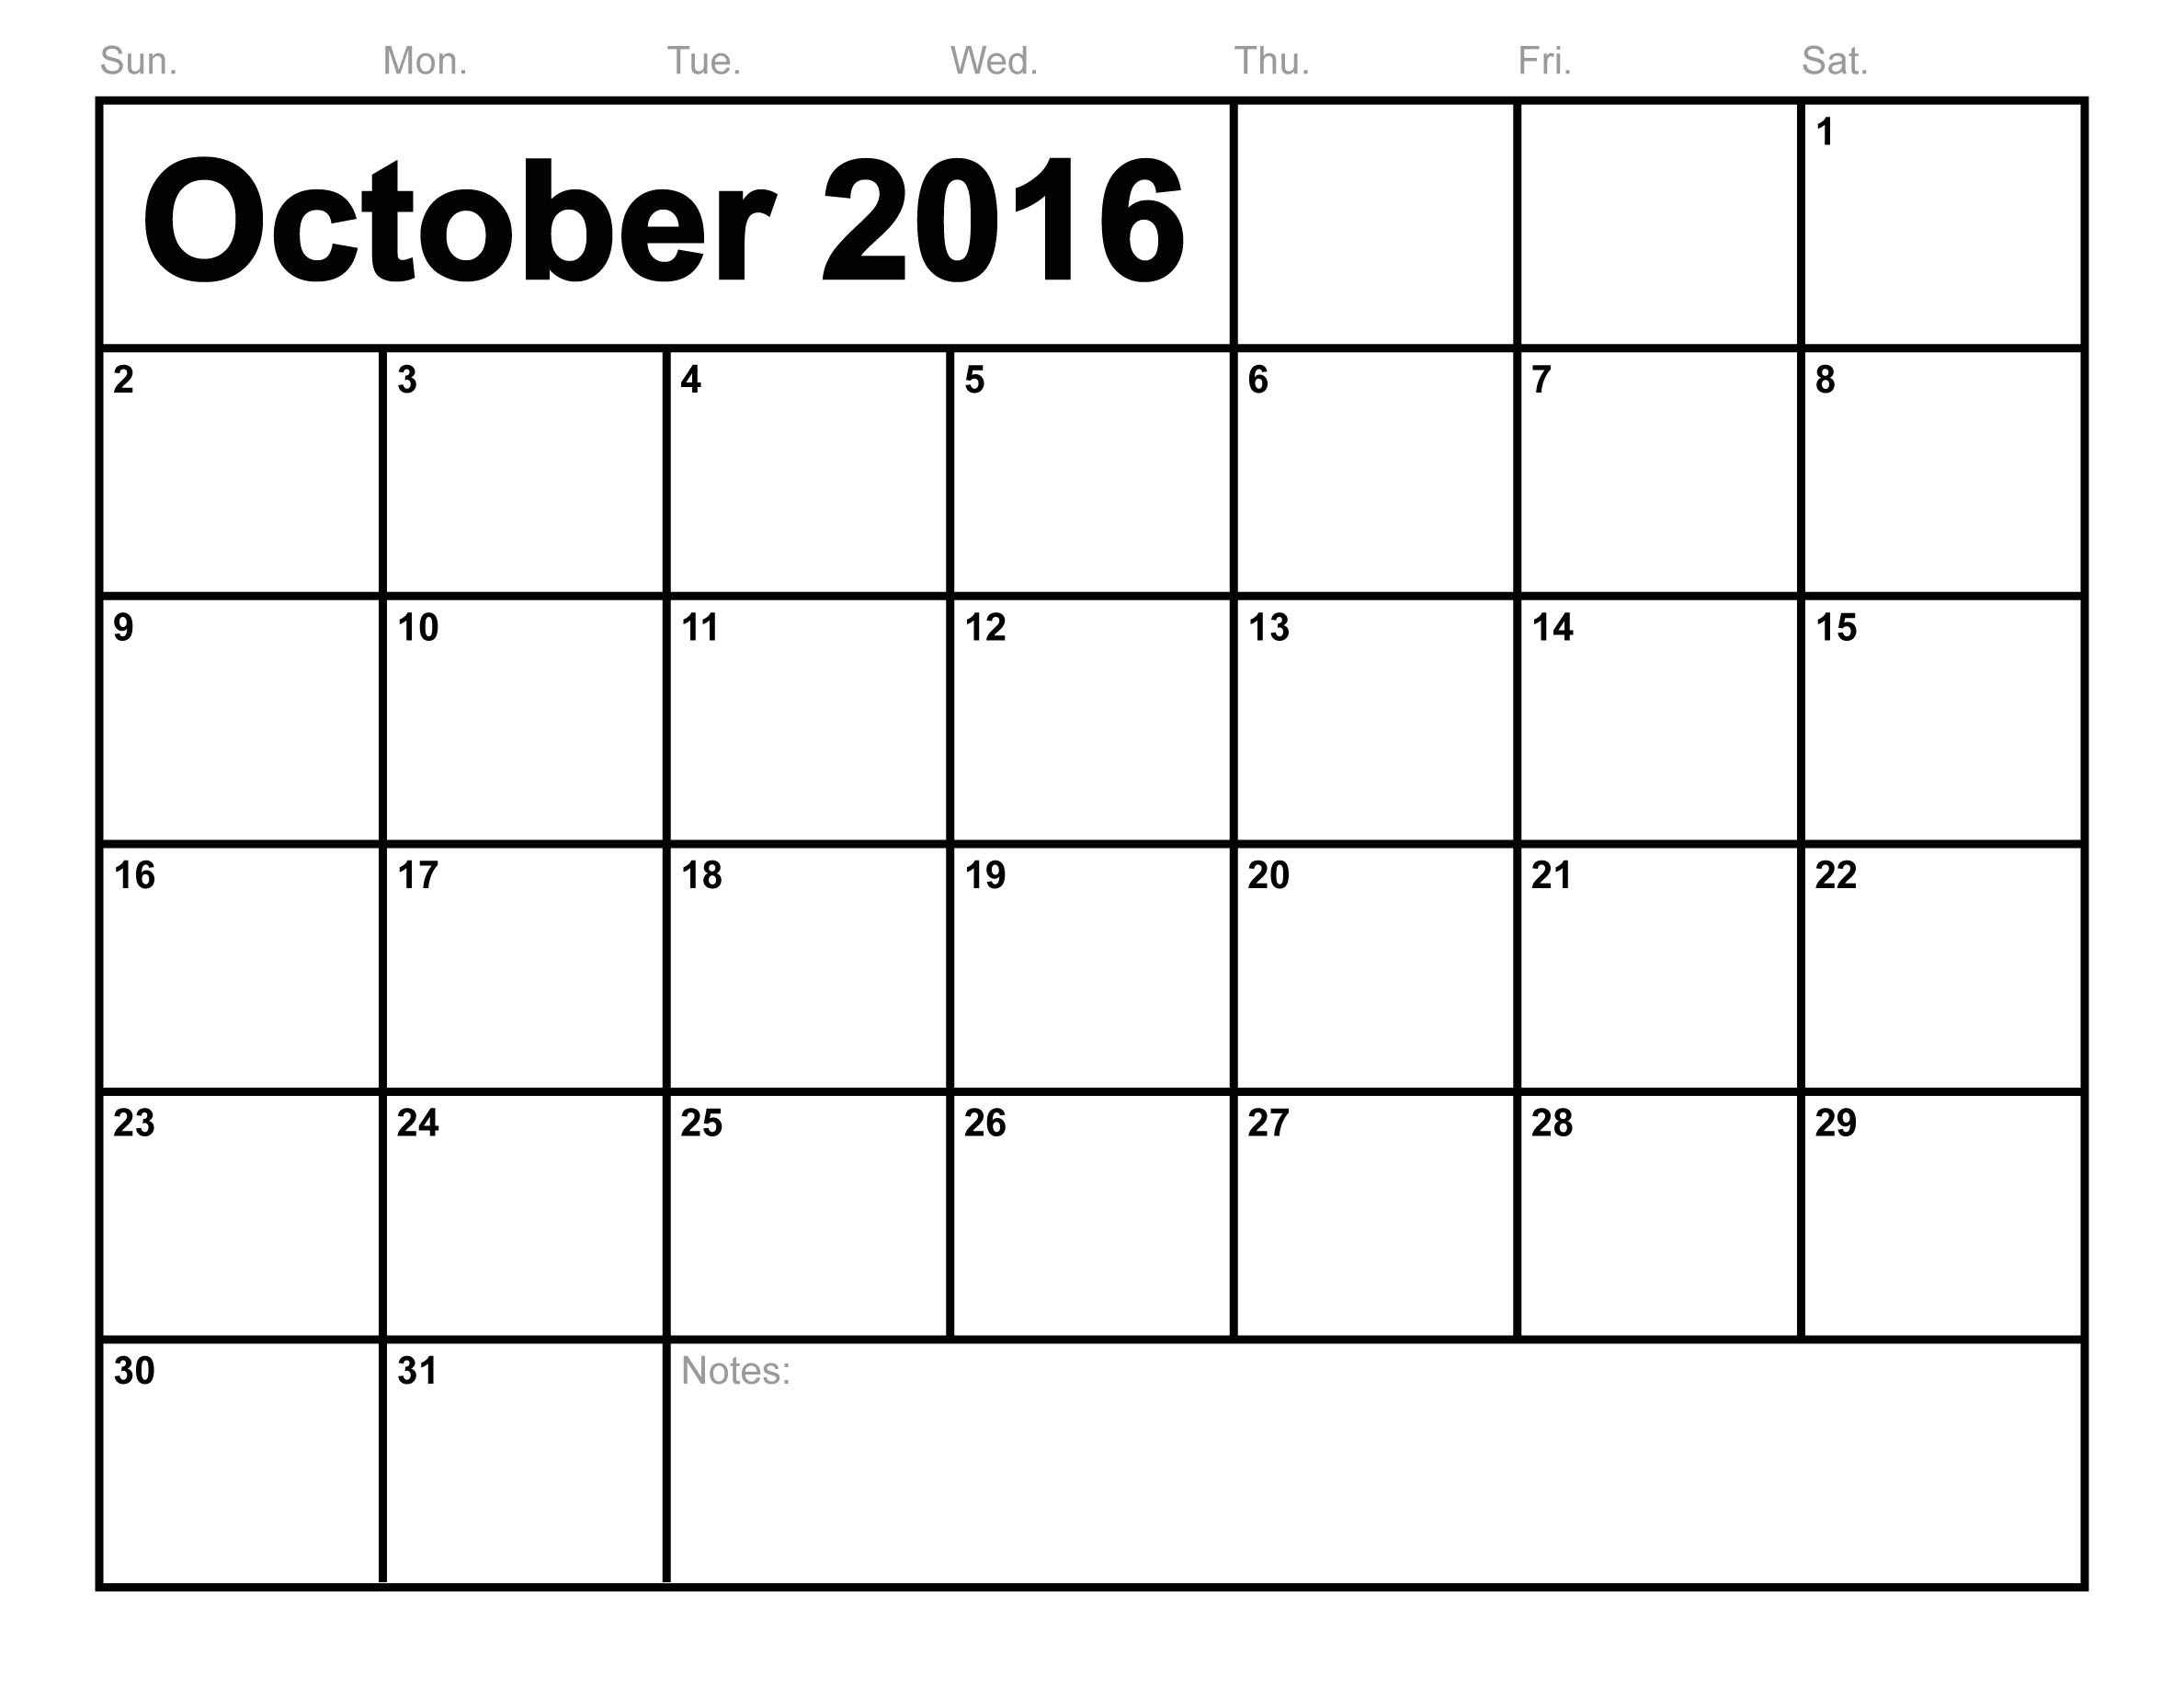 Blank 2016 October Calendar Images On Favim Com